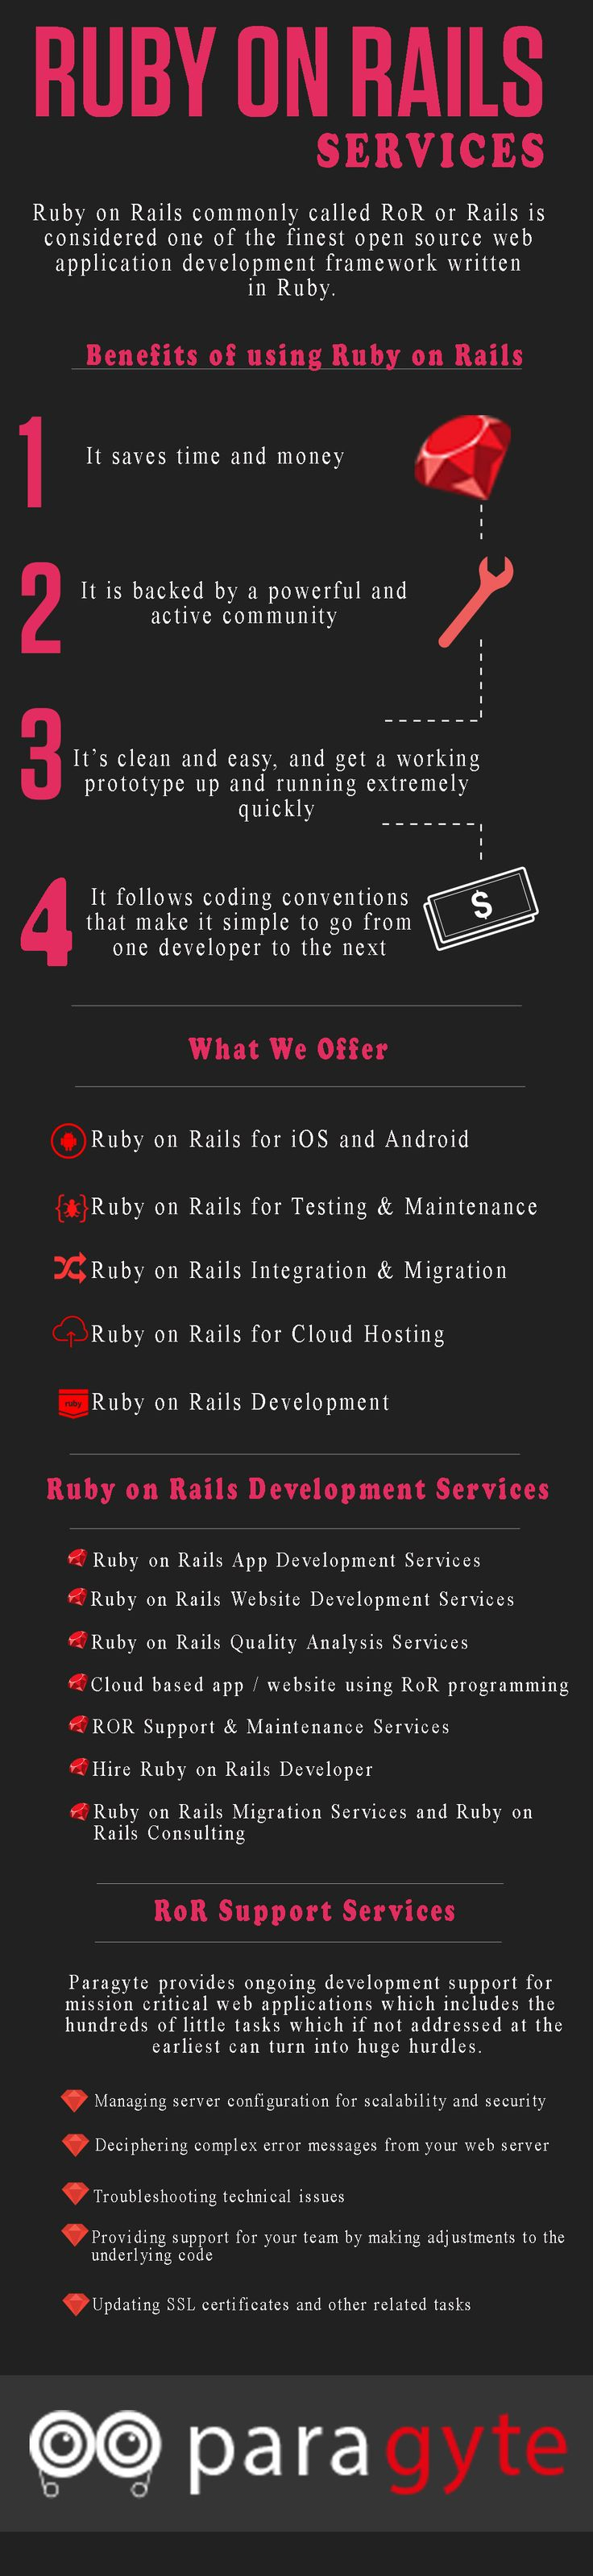 Paragyte Technology is the leading RUBY ON RAILS SERVICES provider. Ruby on Rails commonly called RoR or Rails is considered one of the finest open source web application development framework written in Ruby. Paragyte offersruby on rails for iOS. android, testing & maintenance, integration and migration, cloud computing and developement.